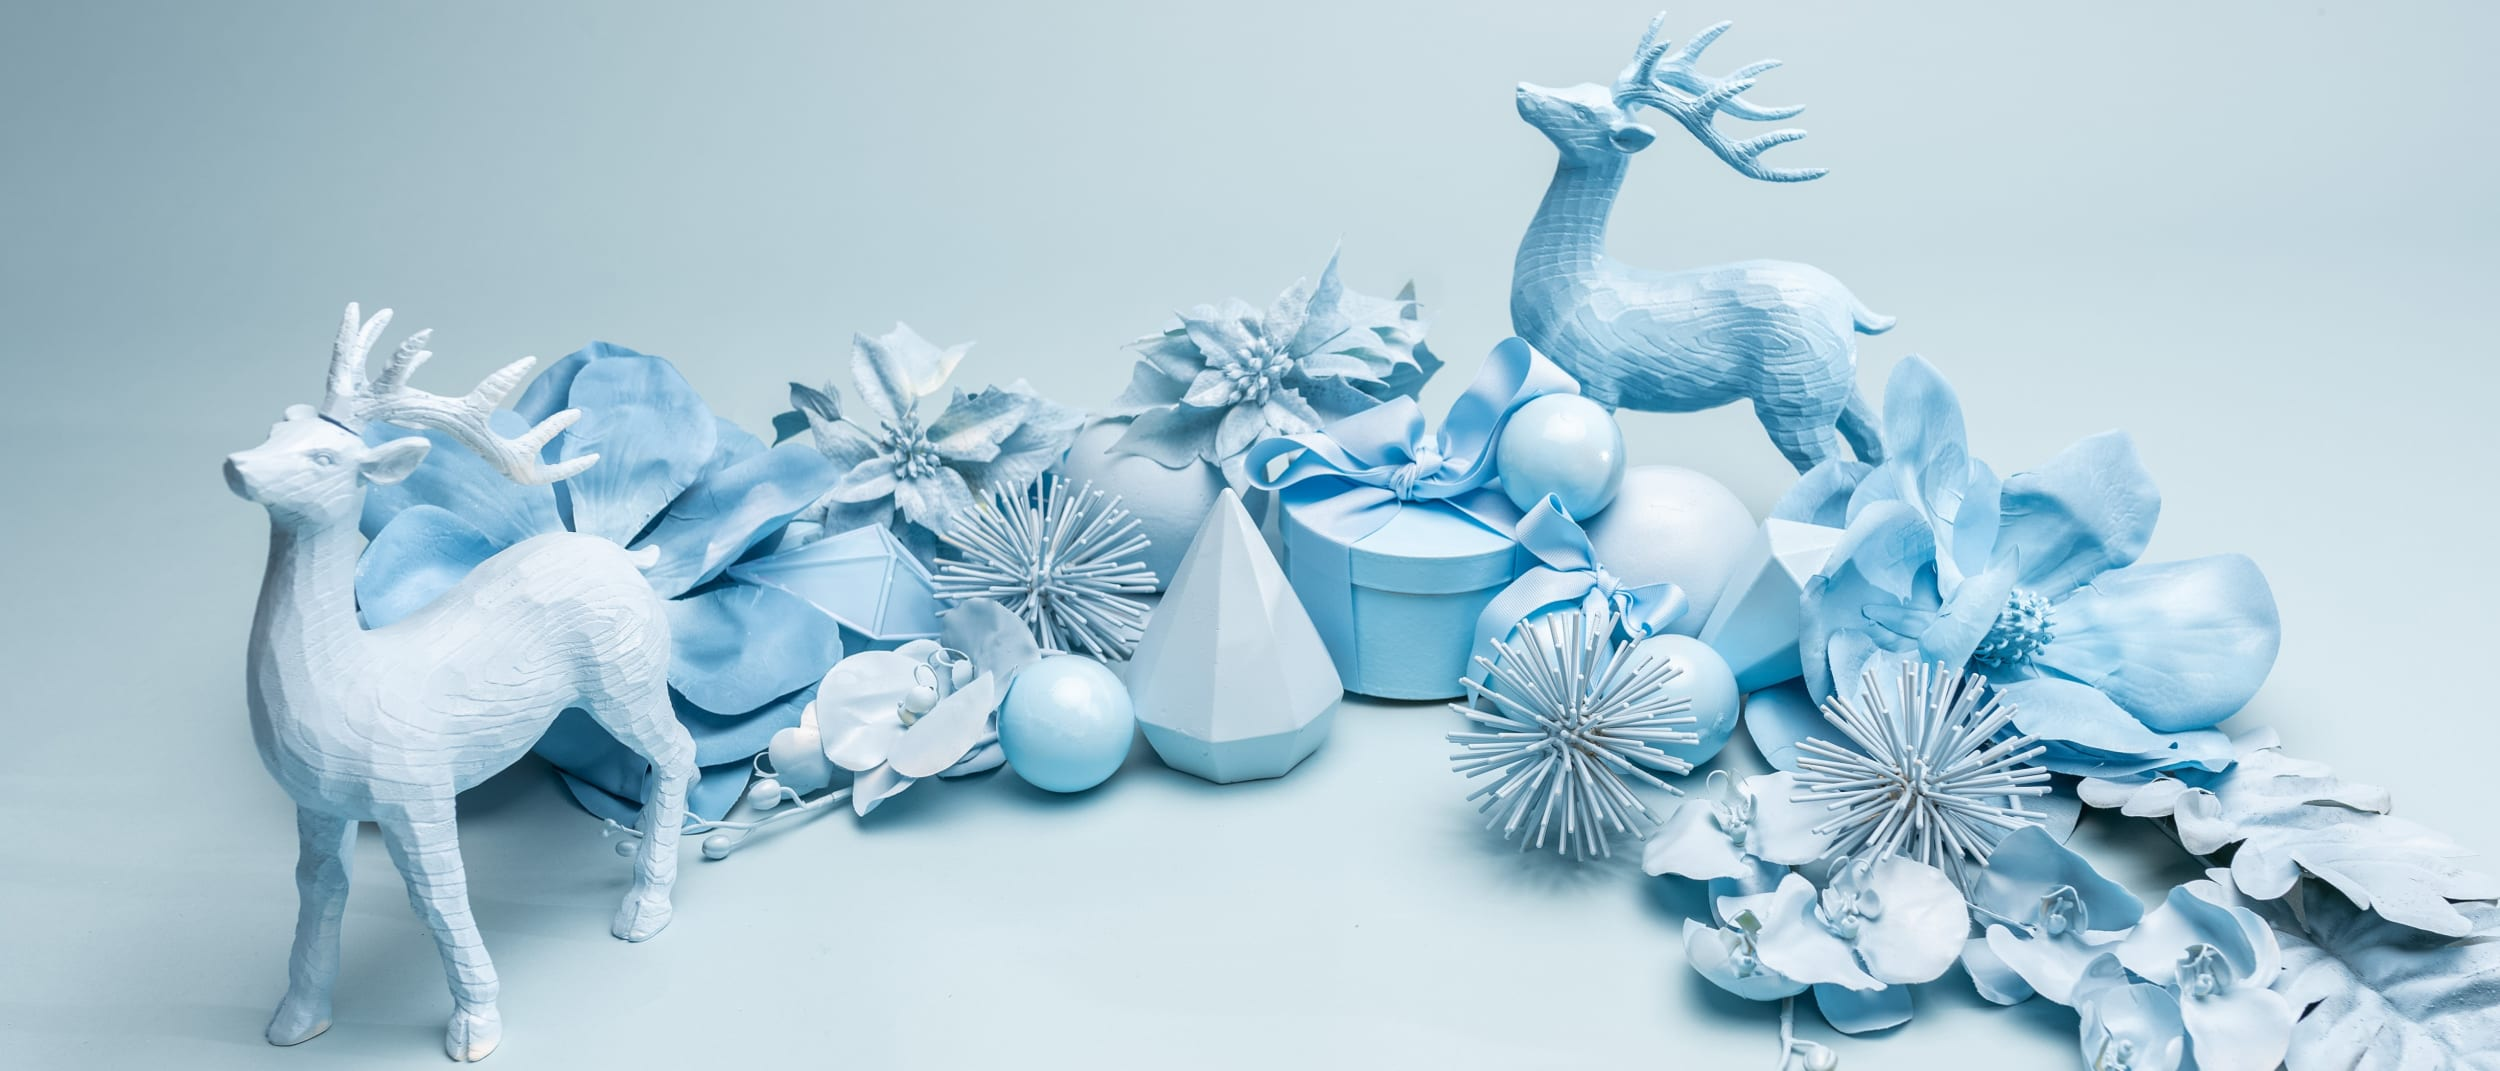 Blue Illusion: 12 days of gifting